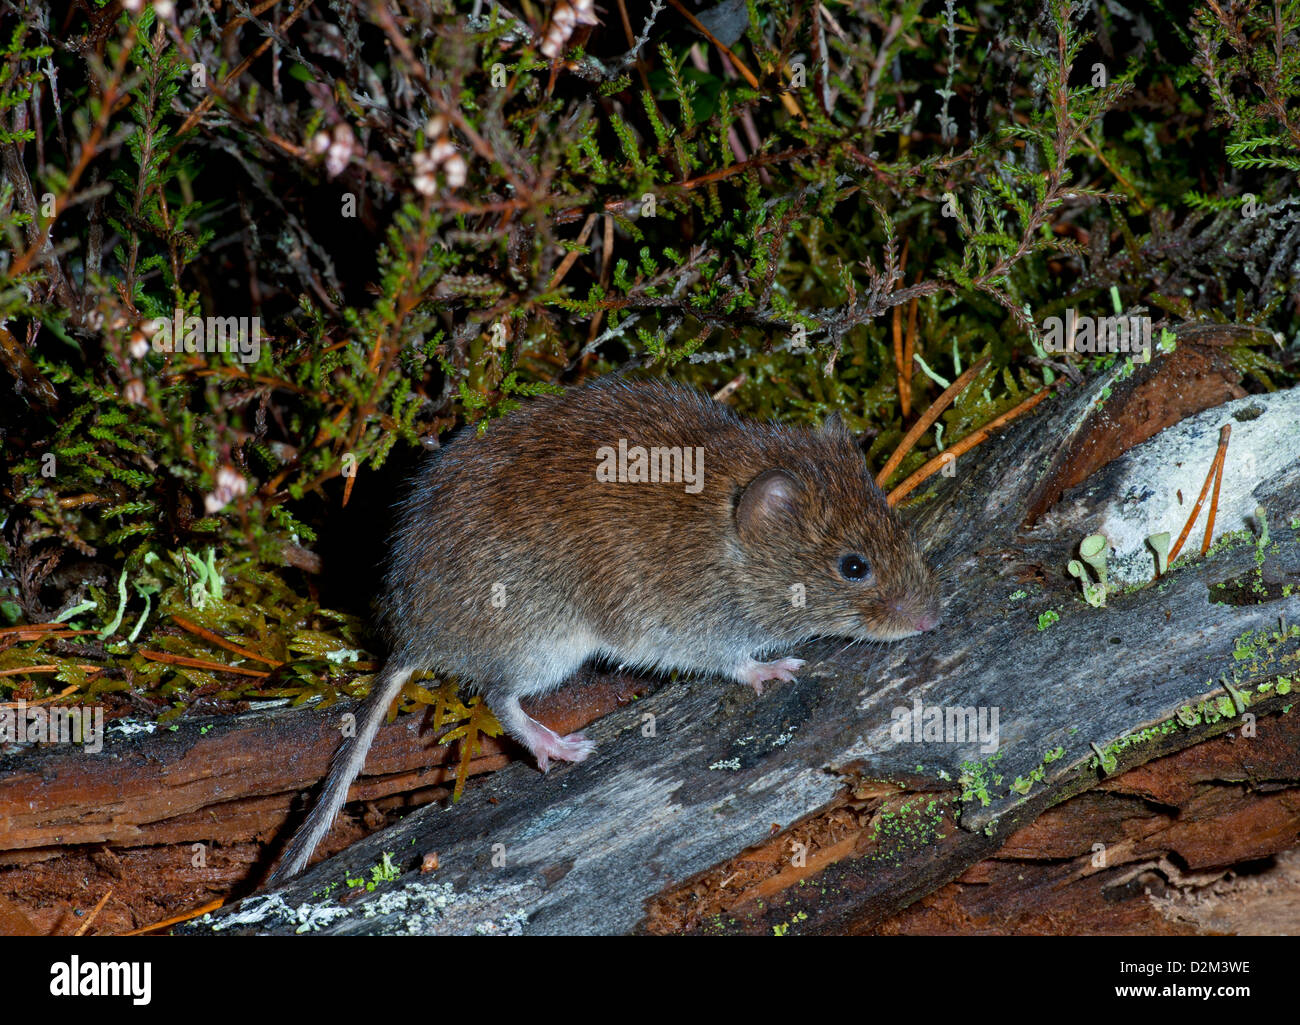 A Bank Vole at home in ancient Scottish pine woodland.   SCO 8824 - Stock Image